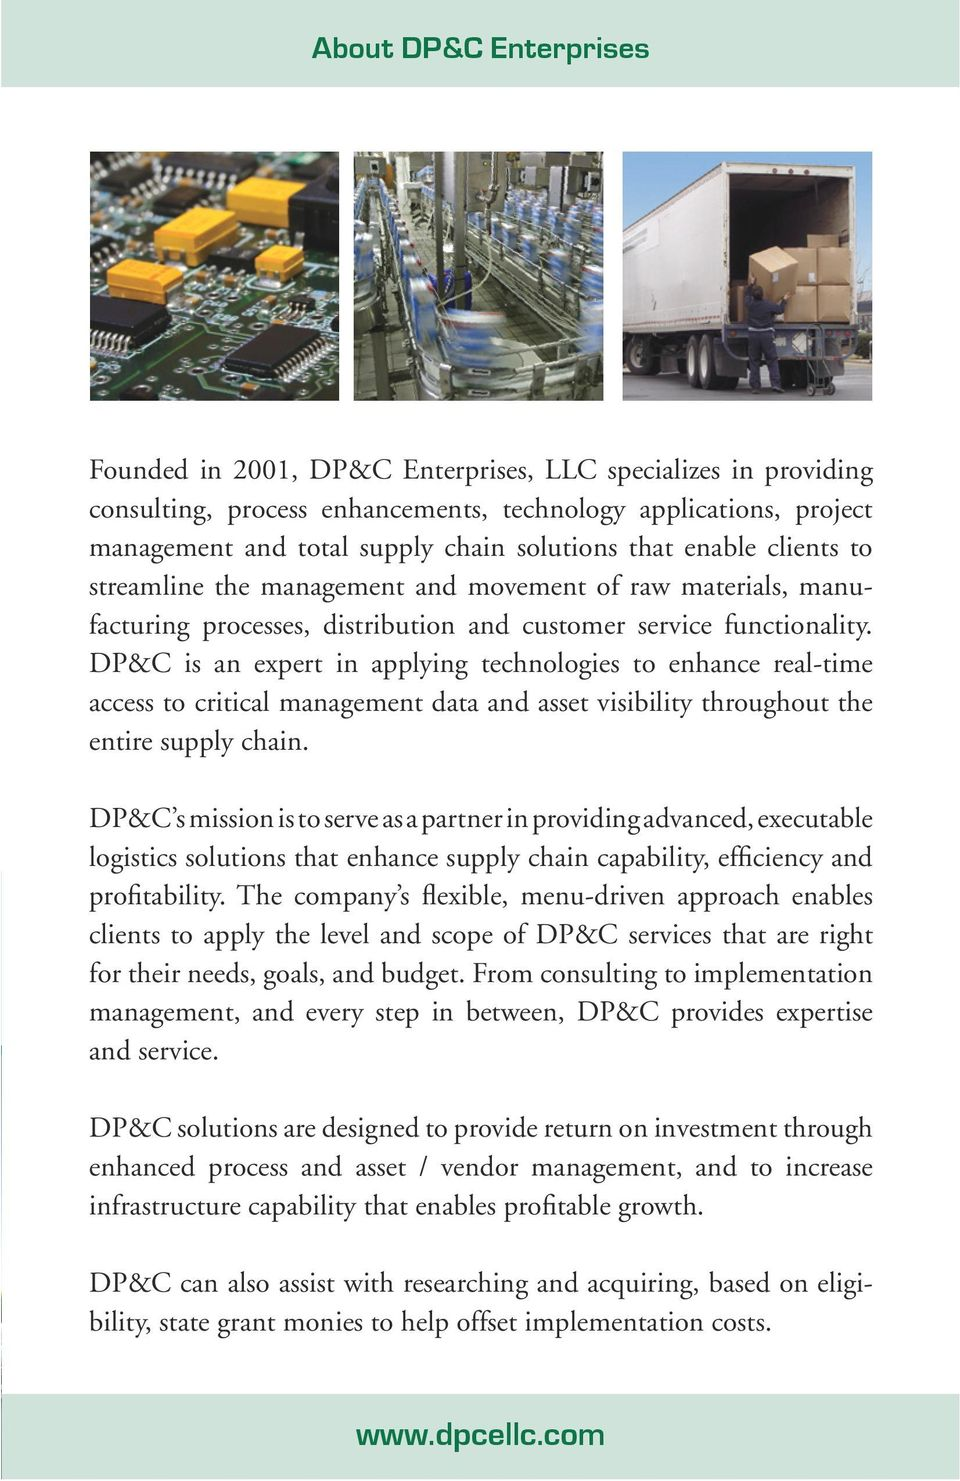 DP&C is an expert in applying technologies to enhance real-time access to critical management data and asset visibility throughout the entire supply chain.